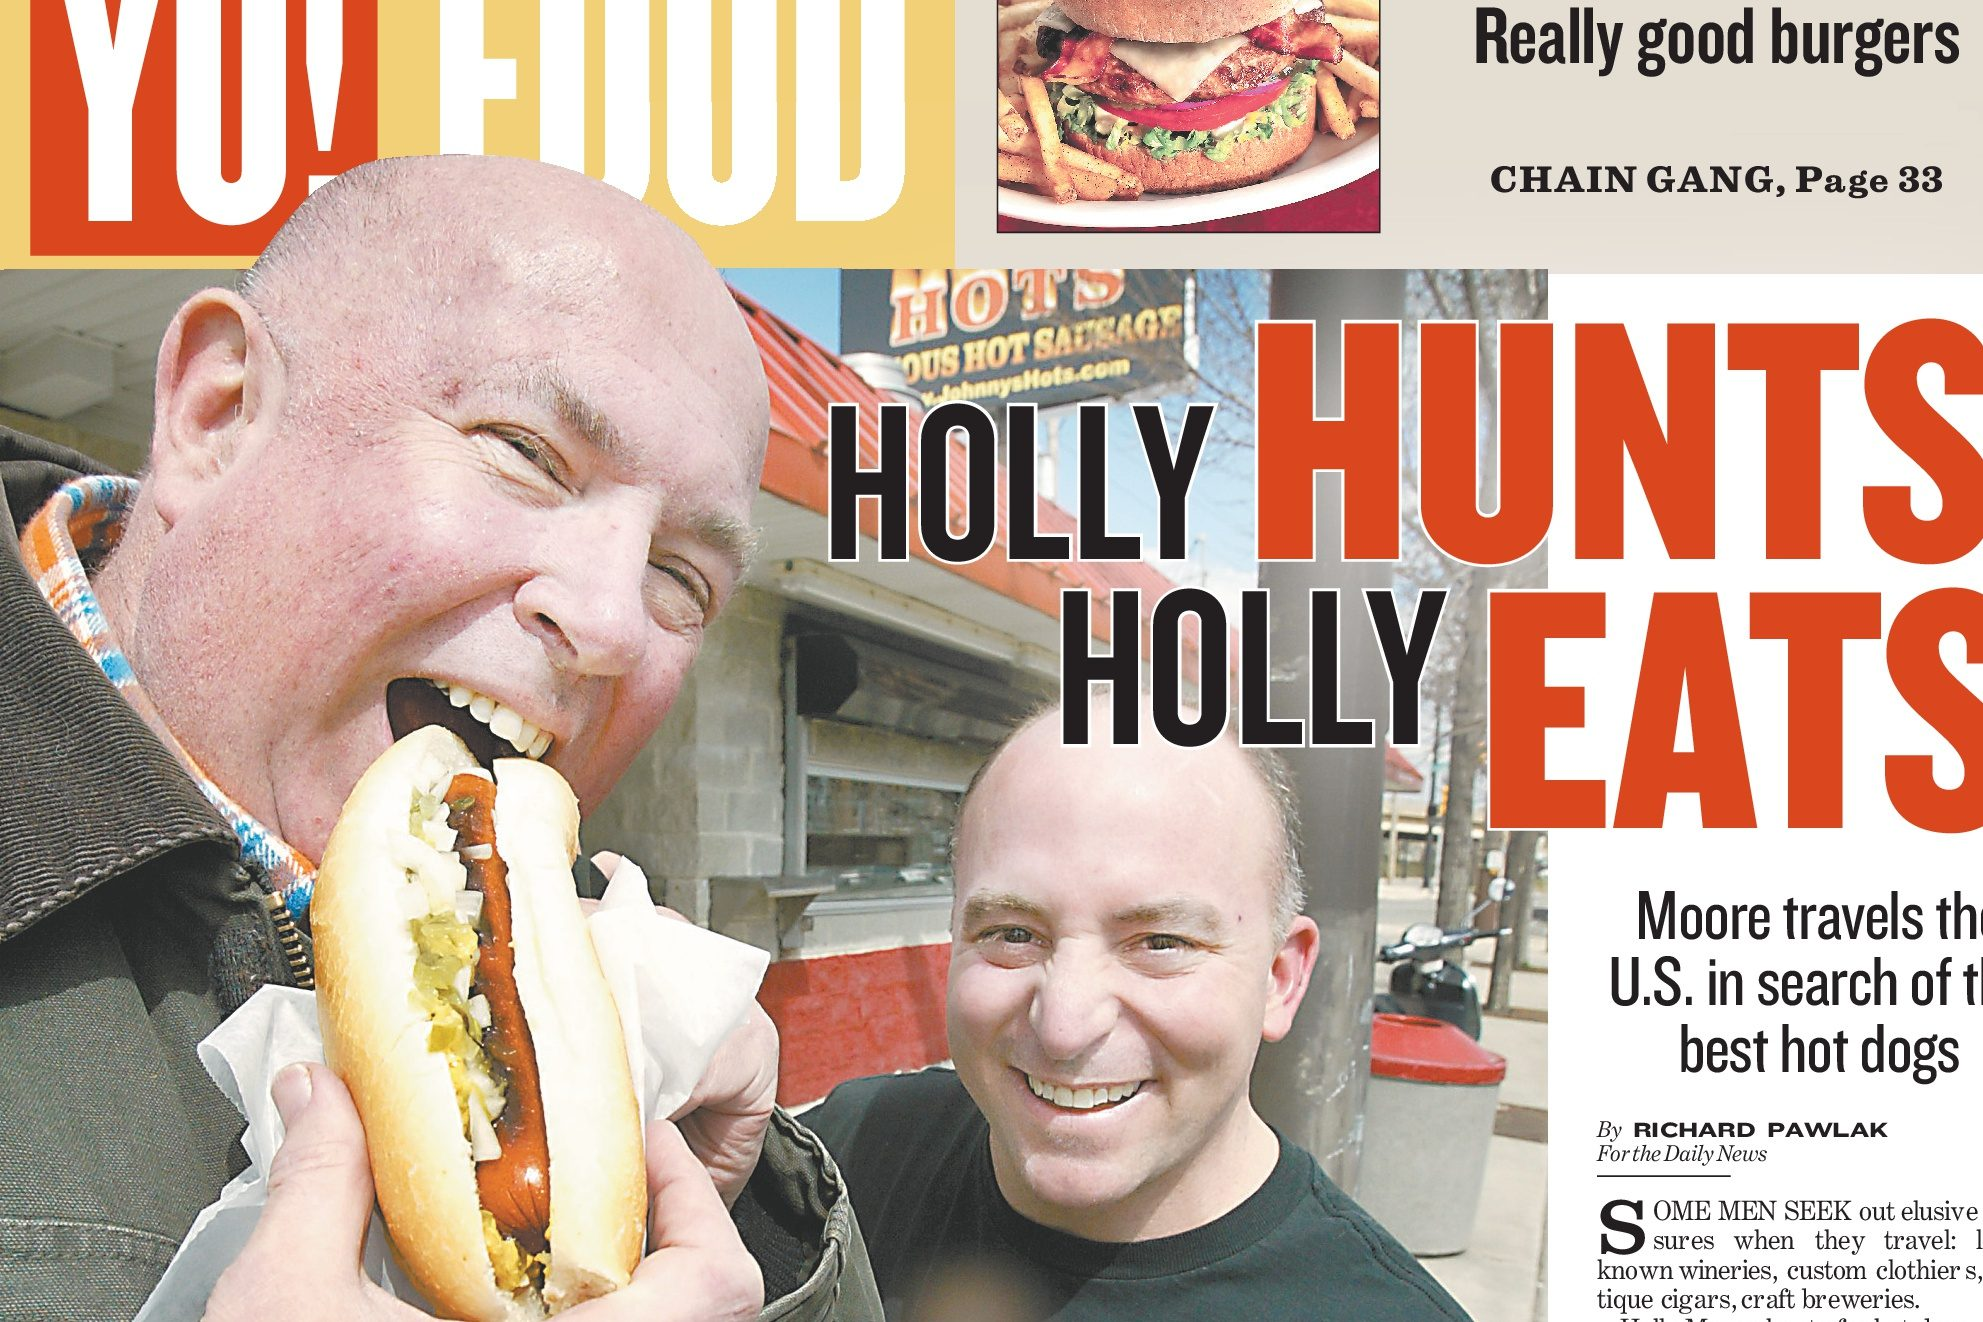 Holly Moore, pictured with Johnny's Hots owner John Danzy, on the cover of the Daily News´ food section, March 30, 2006